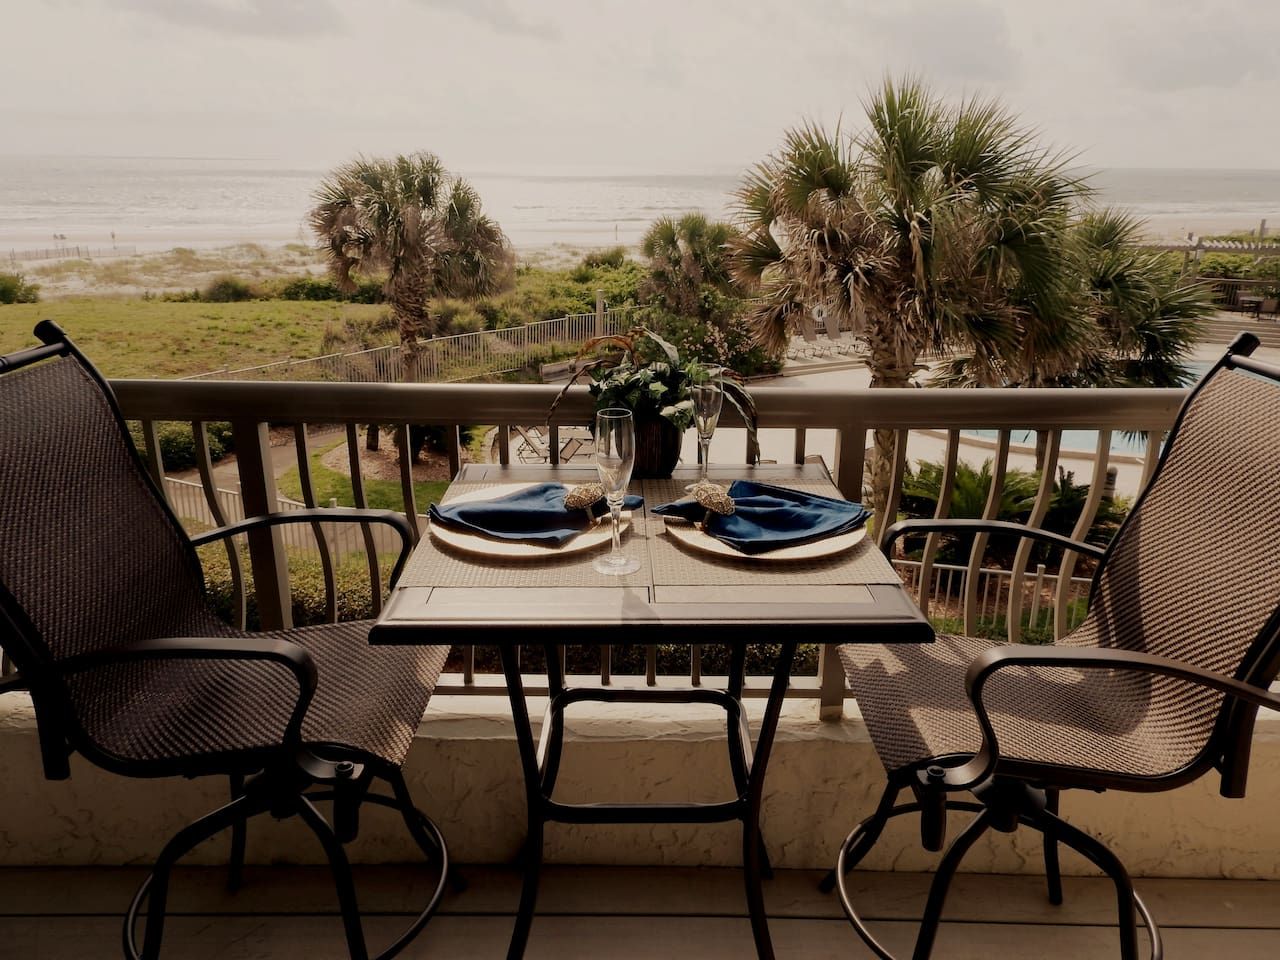 """Oceanfront balcony. """"Loved sitting on the balcony right on the ocean. Very short pathway to beach. Convenient to restaurants and shops on the resort. Communication was awesome. We loved being there and would do it all over again in a heartbeat!"""""""